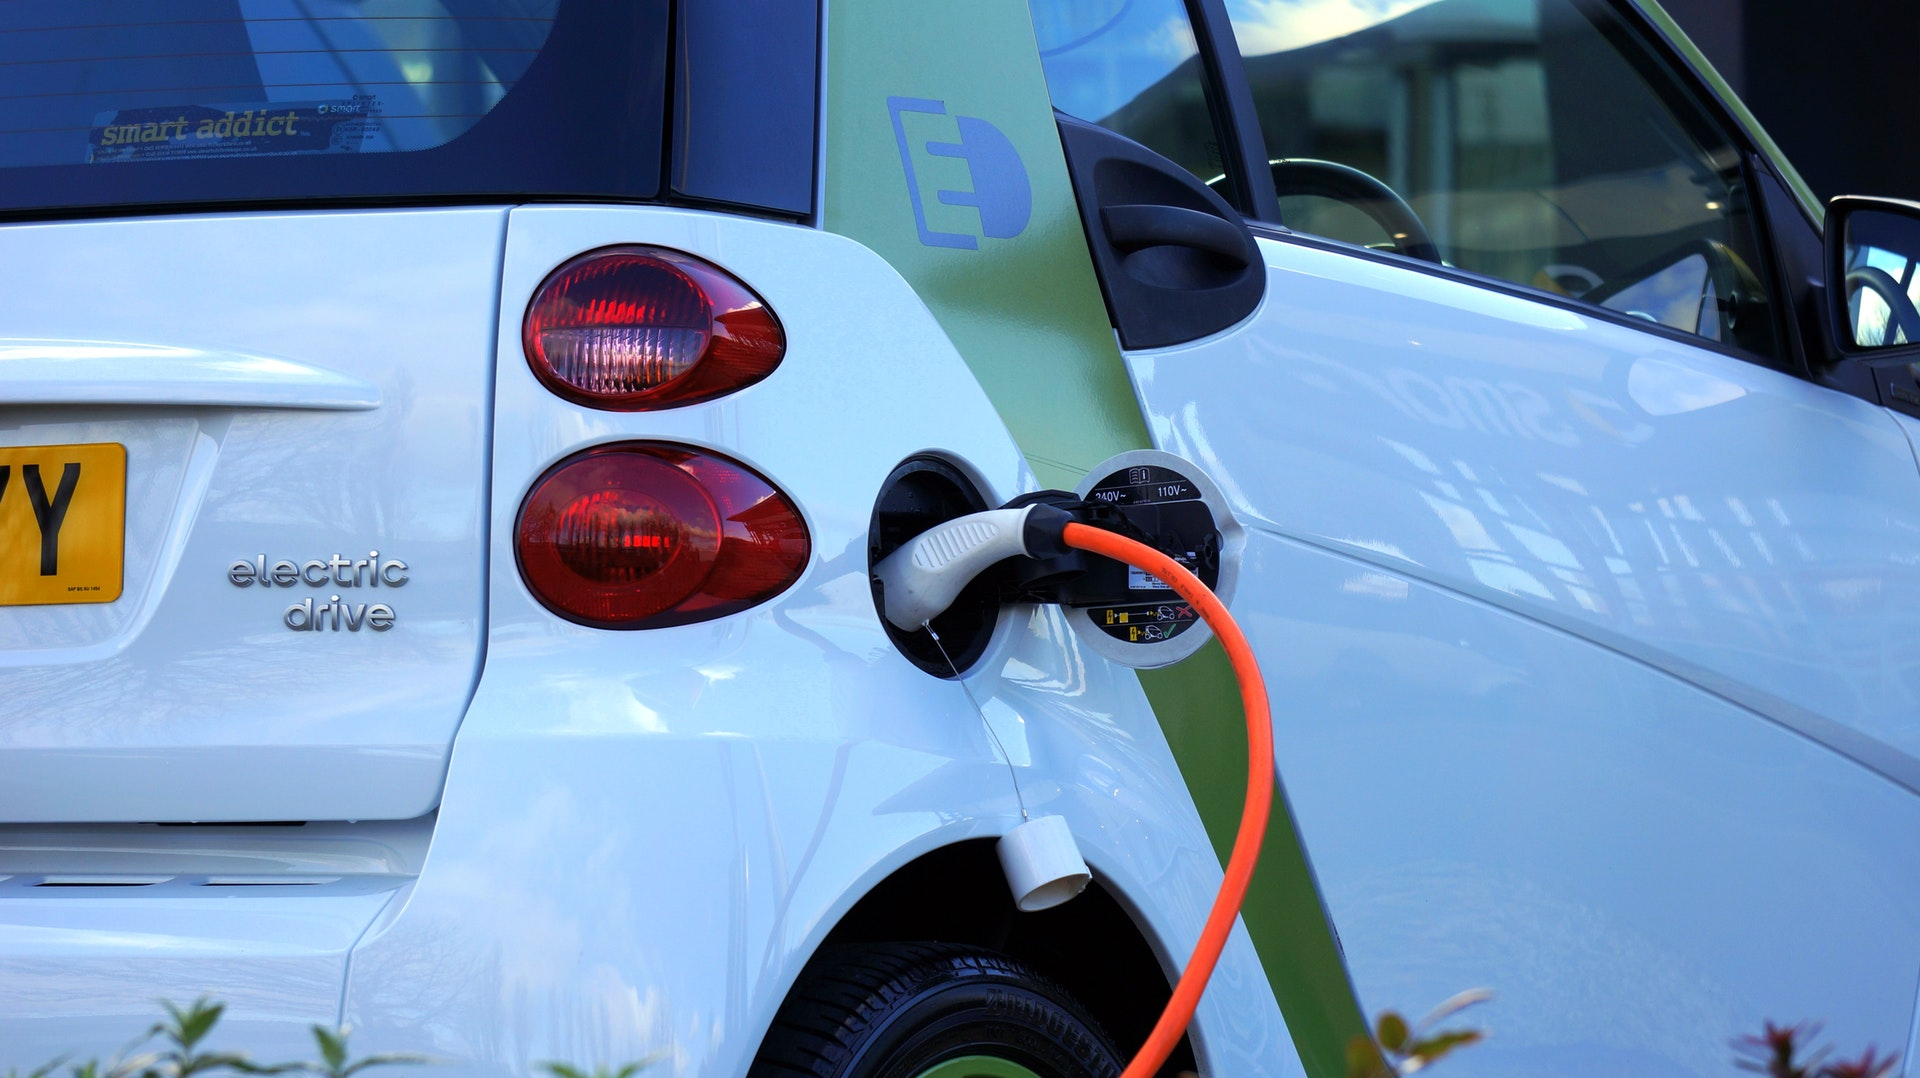 Staying Positive: Electric Vehicles - Progress on the 'Road to Zero', but there are inconvenient truths that need attention